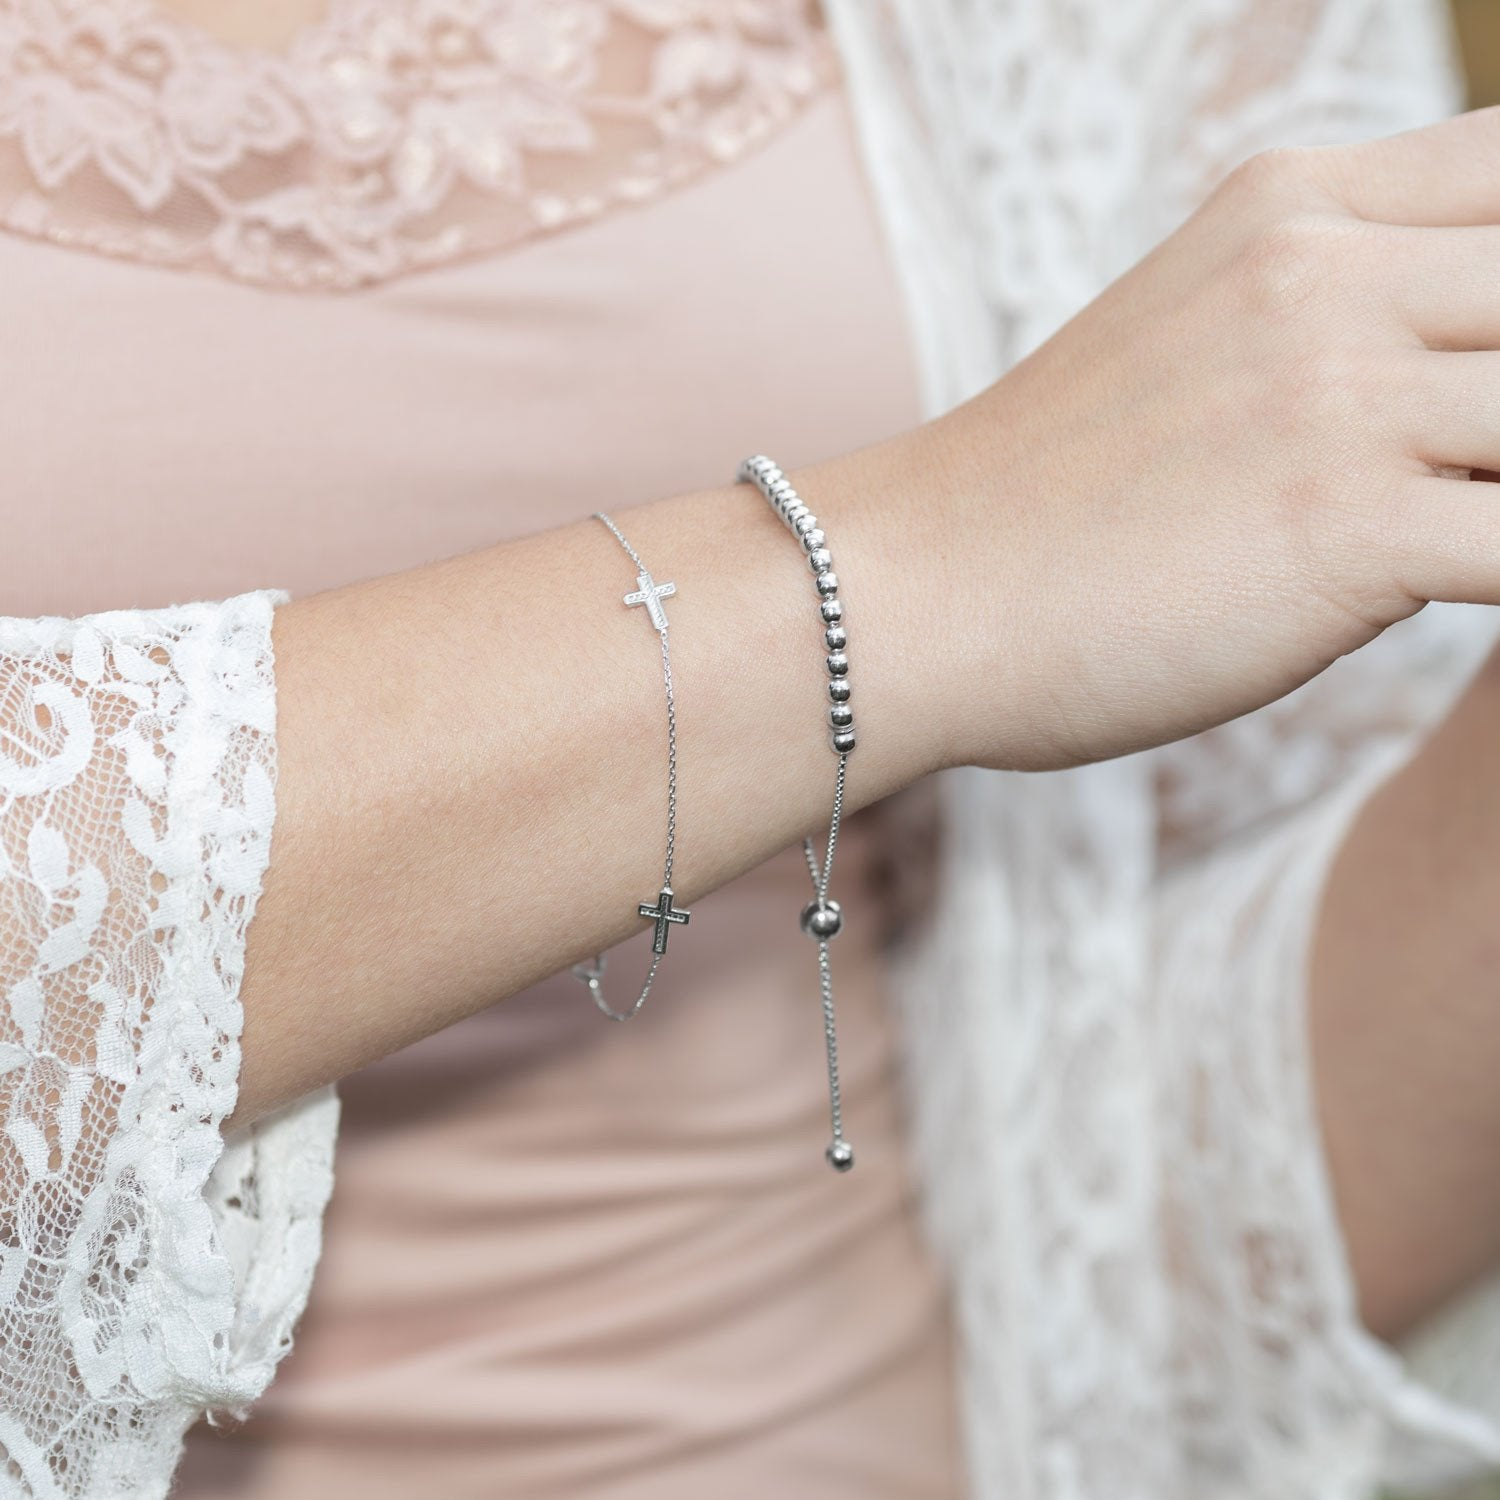 Rhodium Plated Chain and Cross Bracelet